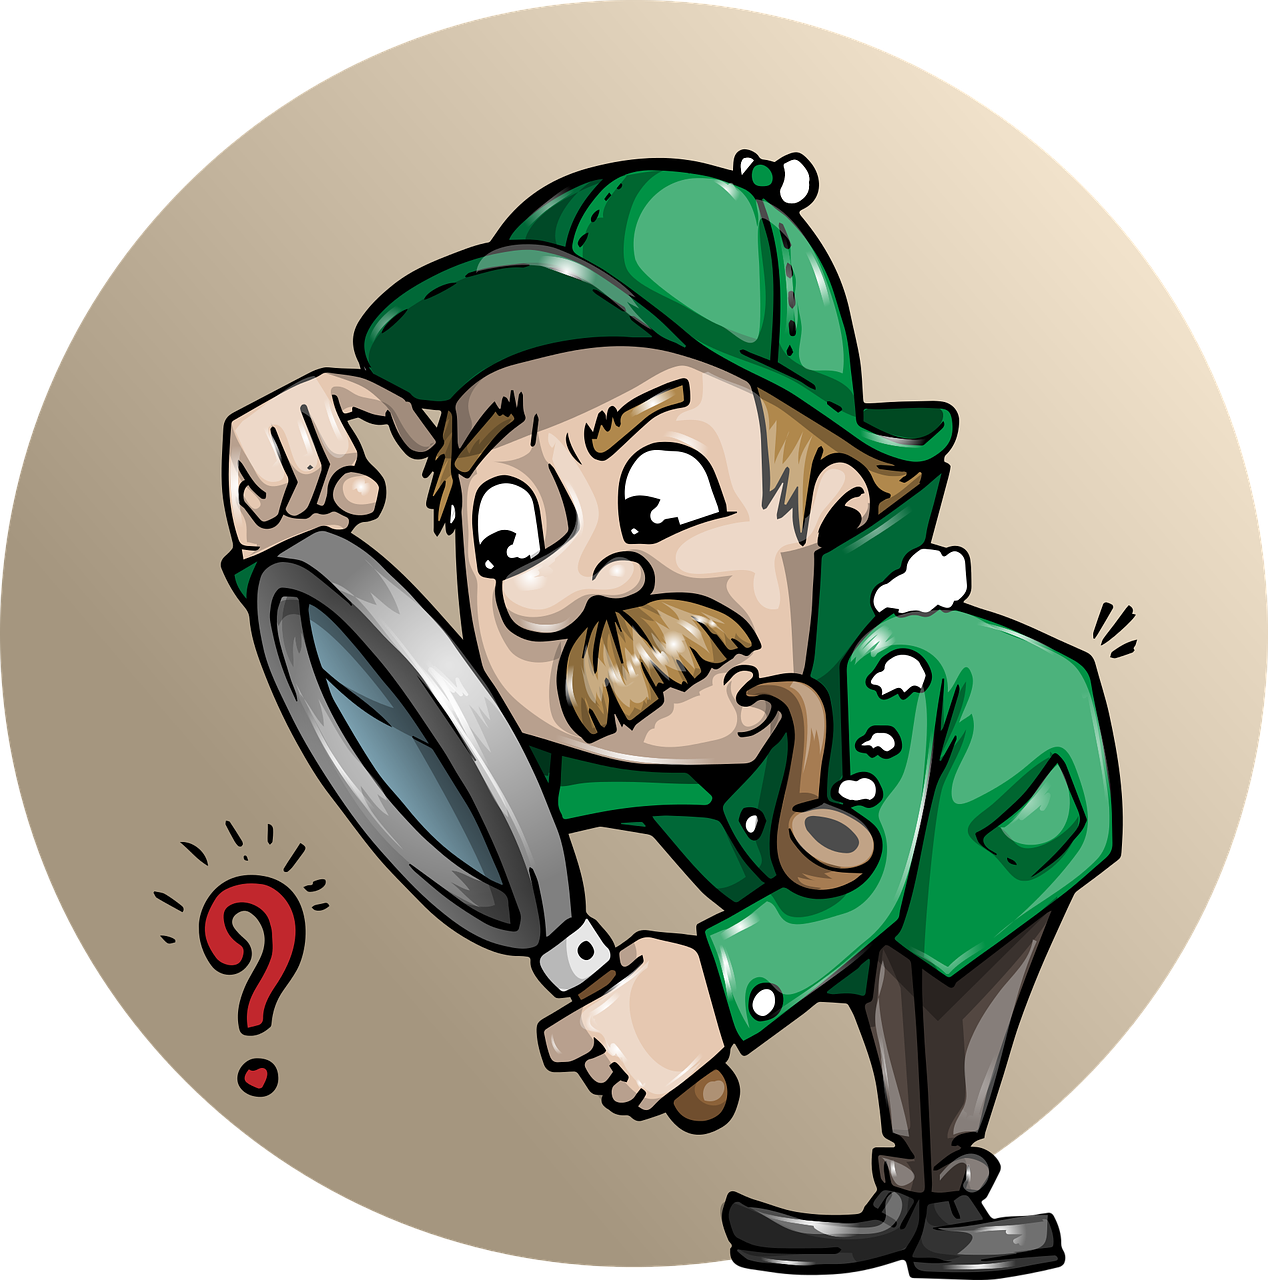 Cartoon of Sherlock Holmes with magnifying glass looking at red question mark. Shows how a real estate broker has connections to home inspectors so they can check for any pot or cannabis related damage.